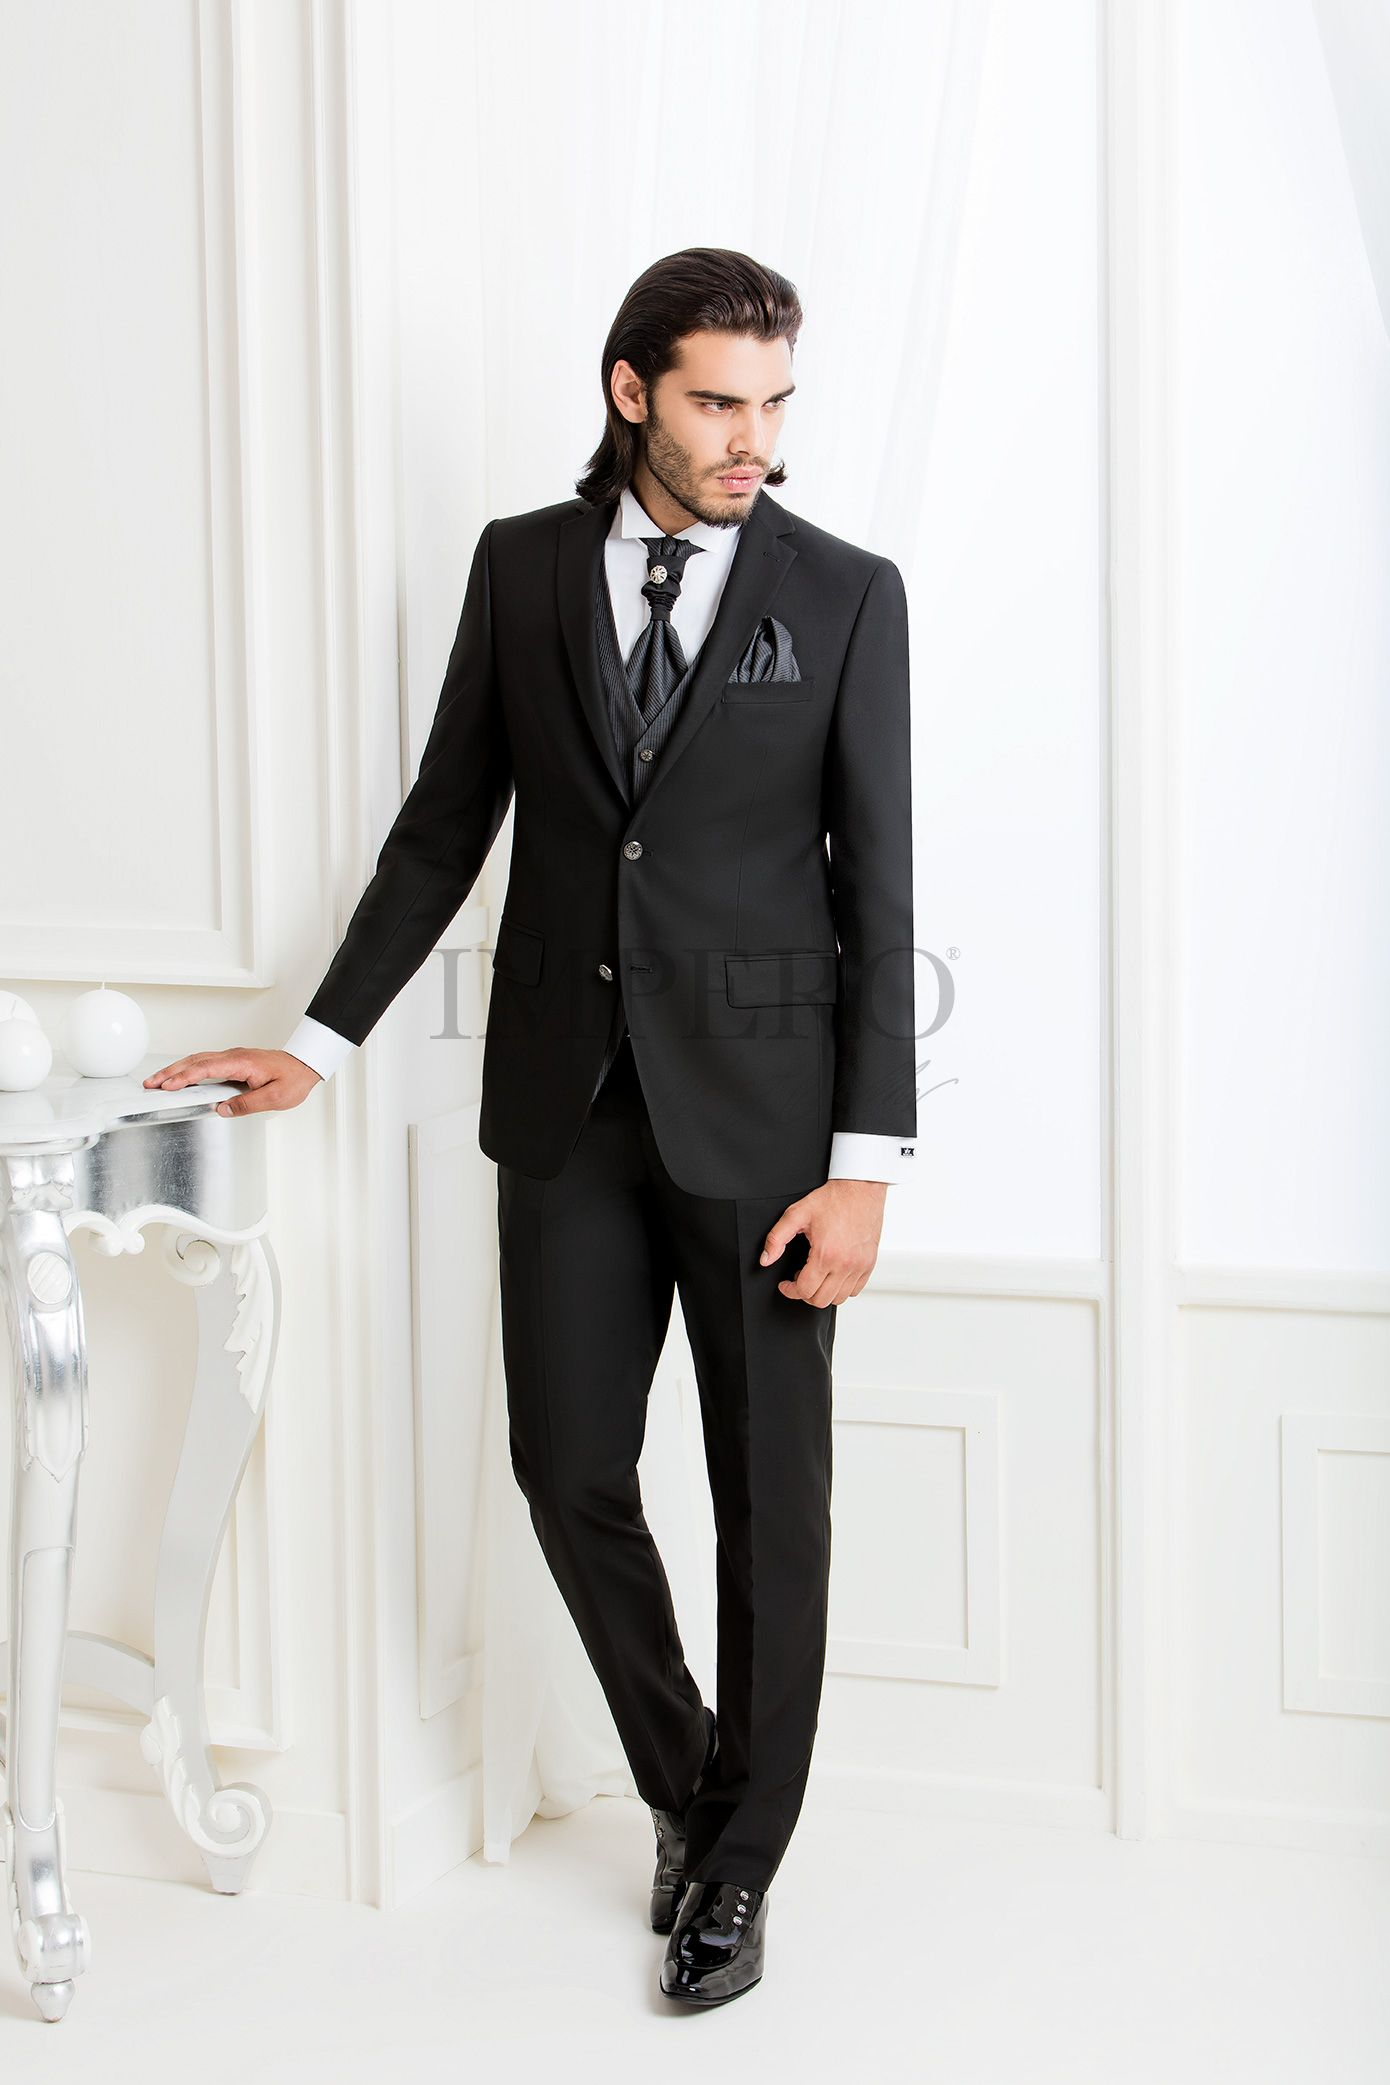 UGS CY16 #sposo #groom #suit #abito #wedding #matrimonio #nozze #nero #black